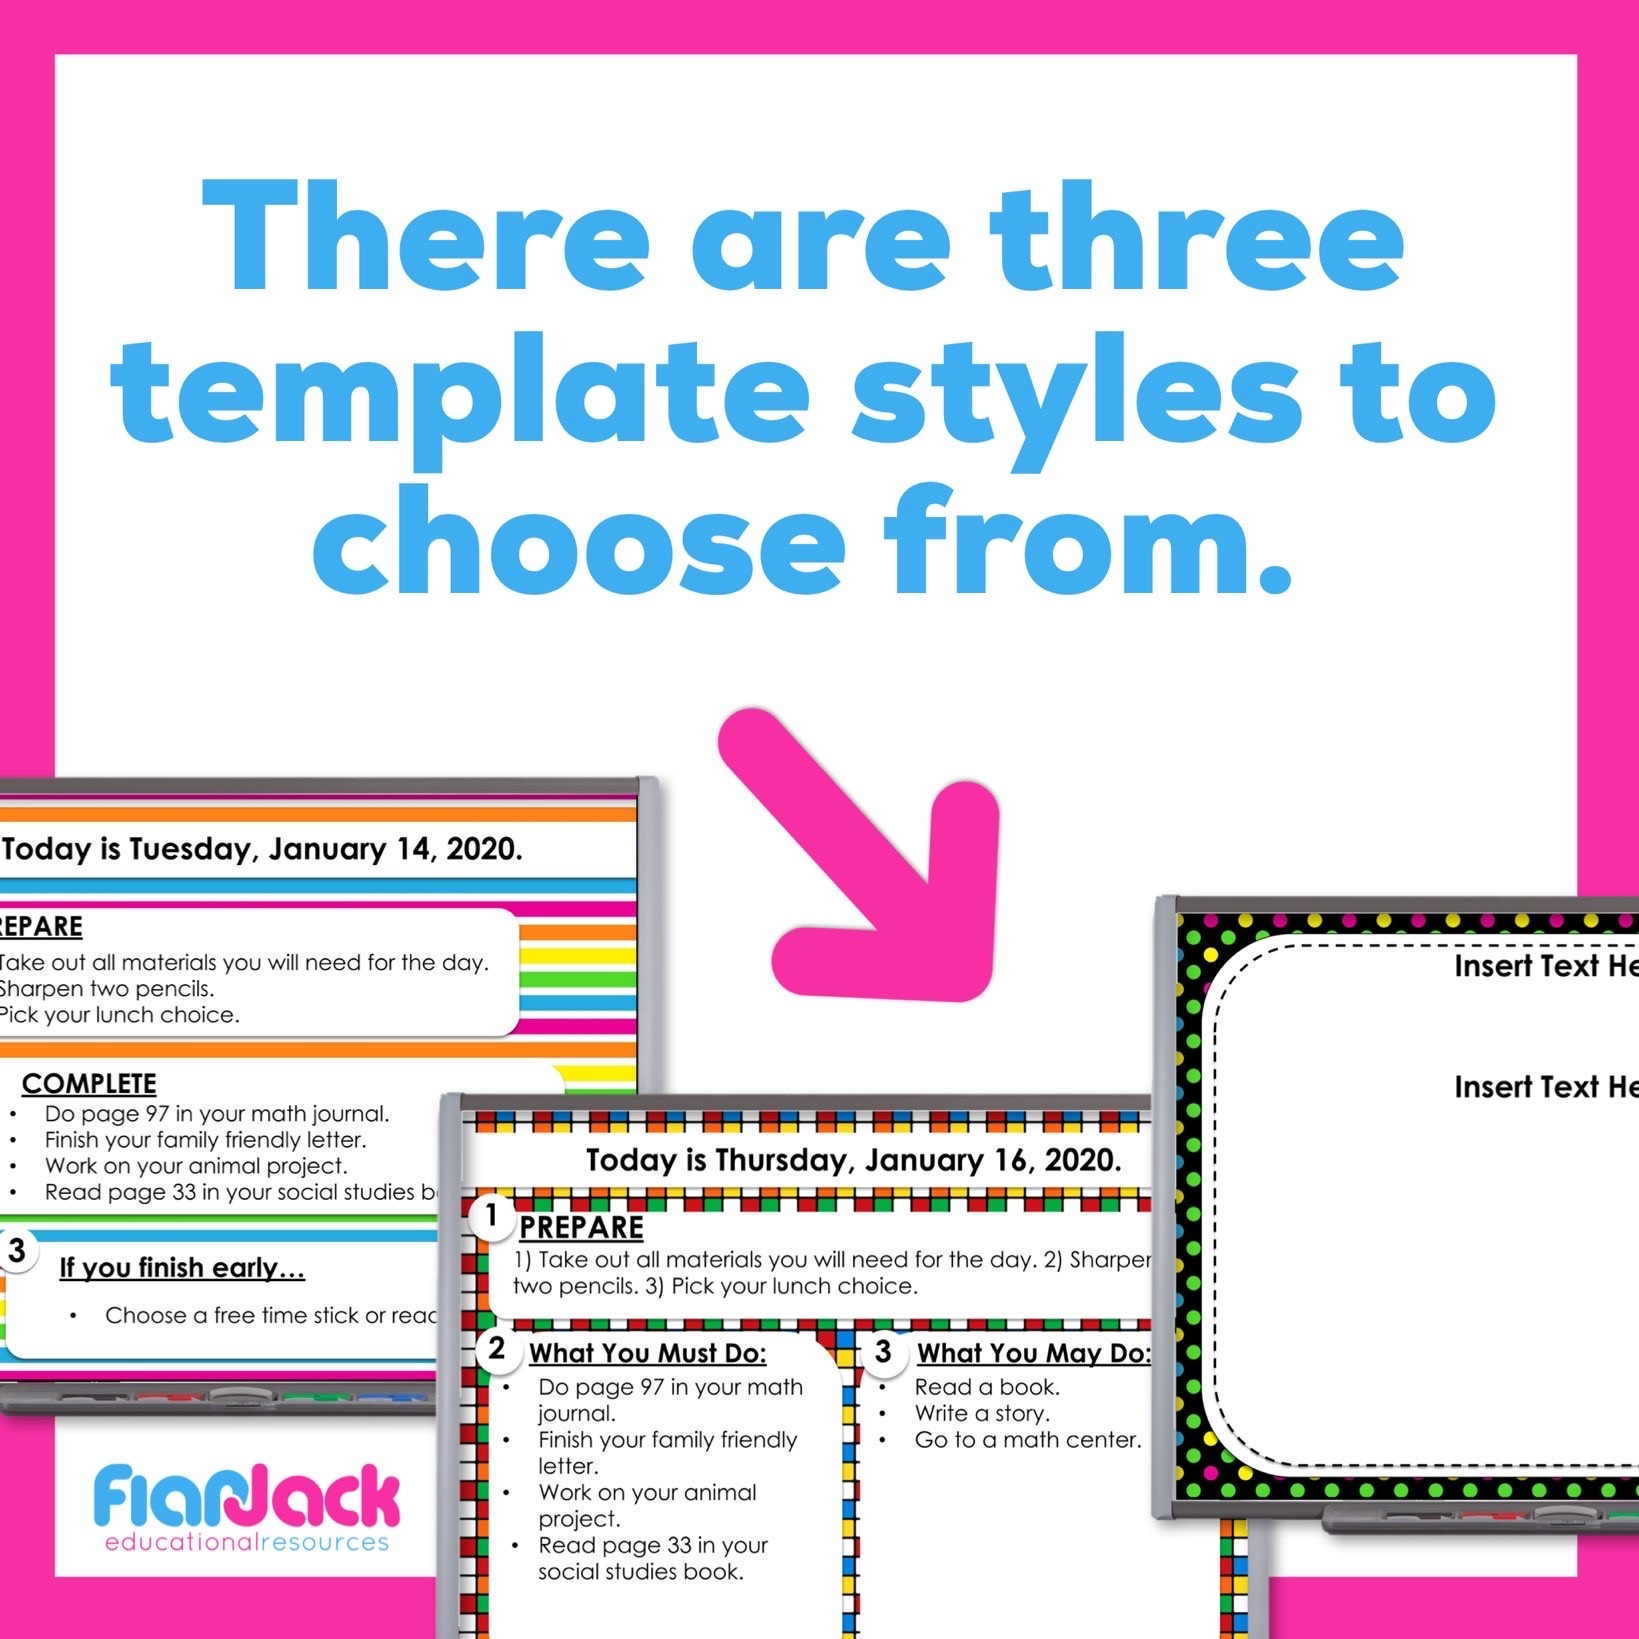 Editable Google Slide Templates | 80s Vibes